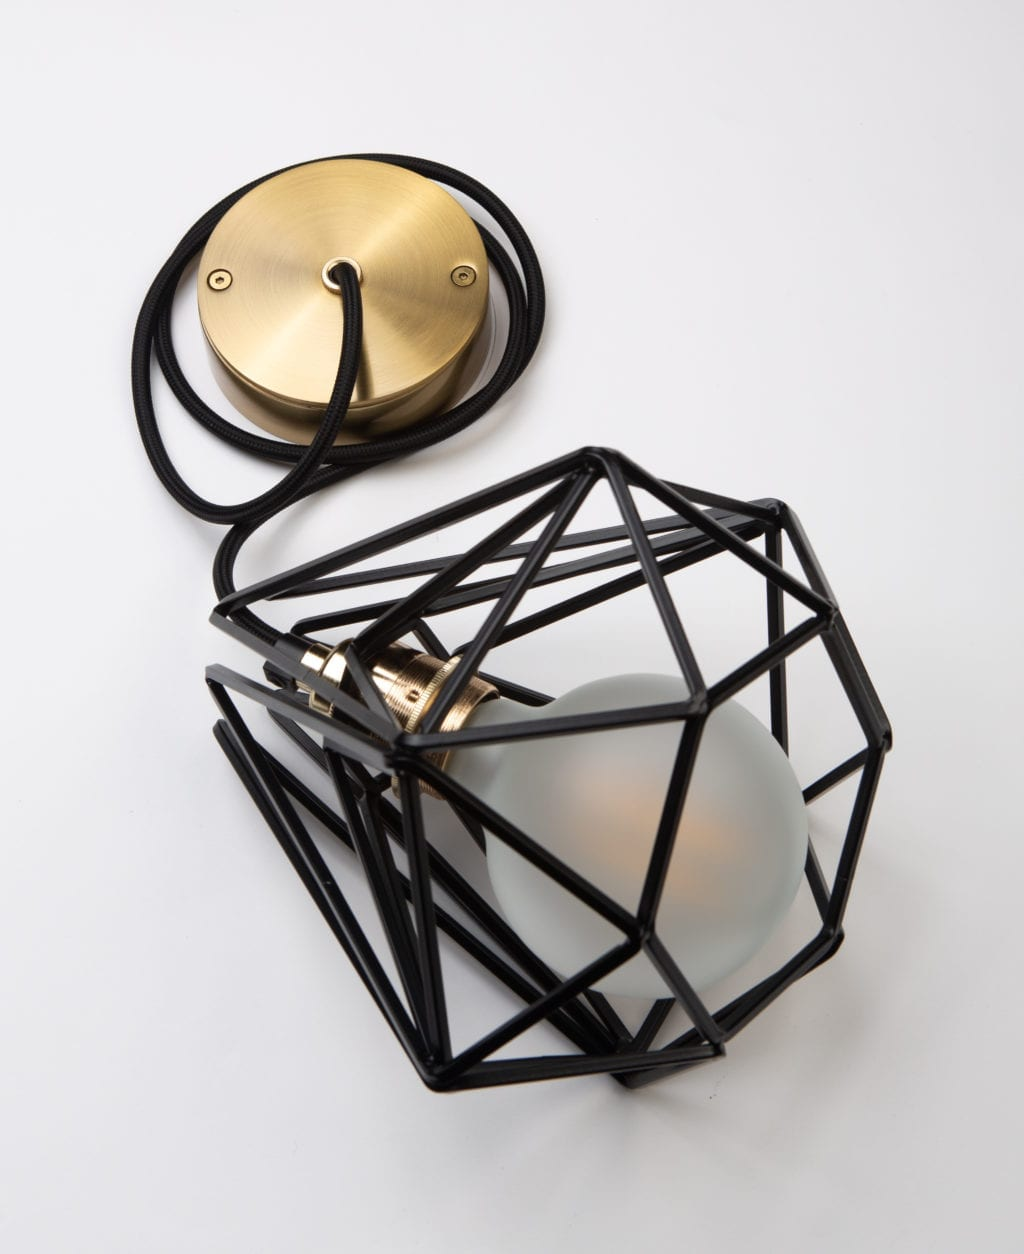 small black cage pendant light with frosted light bulb, black fabric cable, gold bulb holder and gold ceiling rose against white background